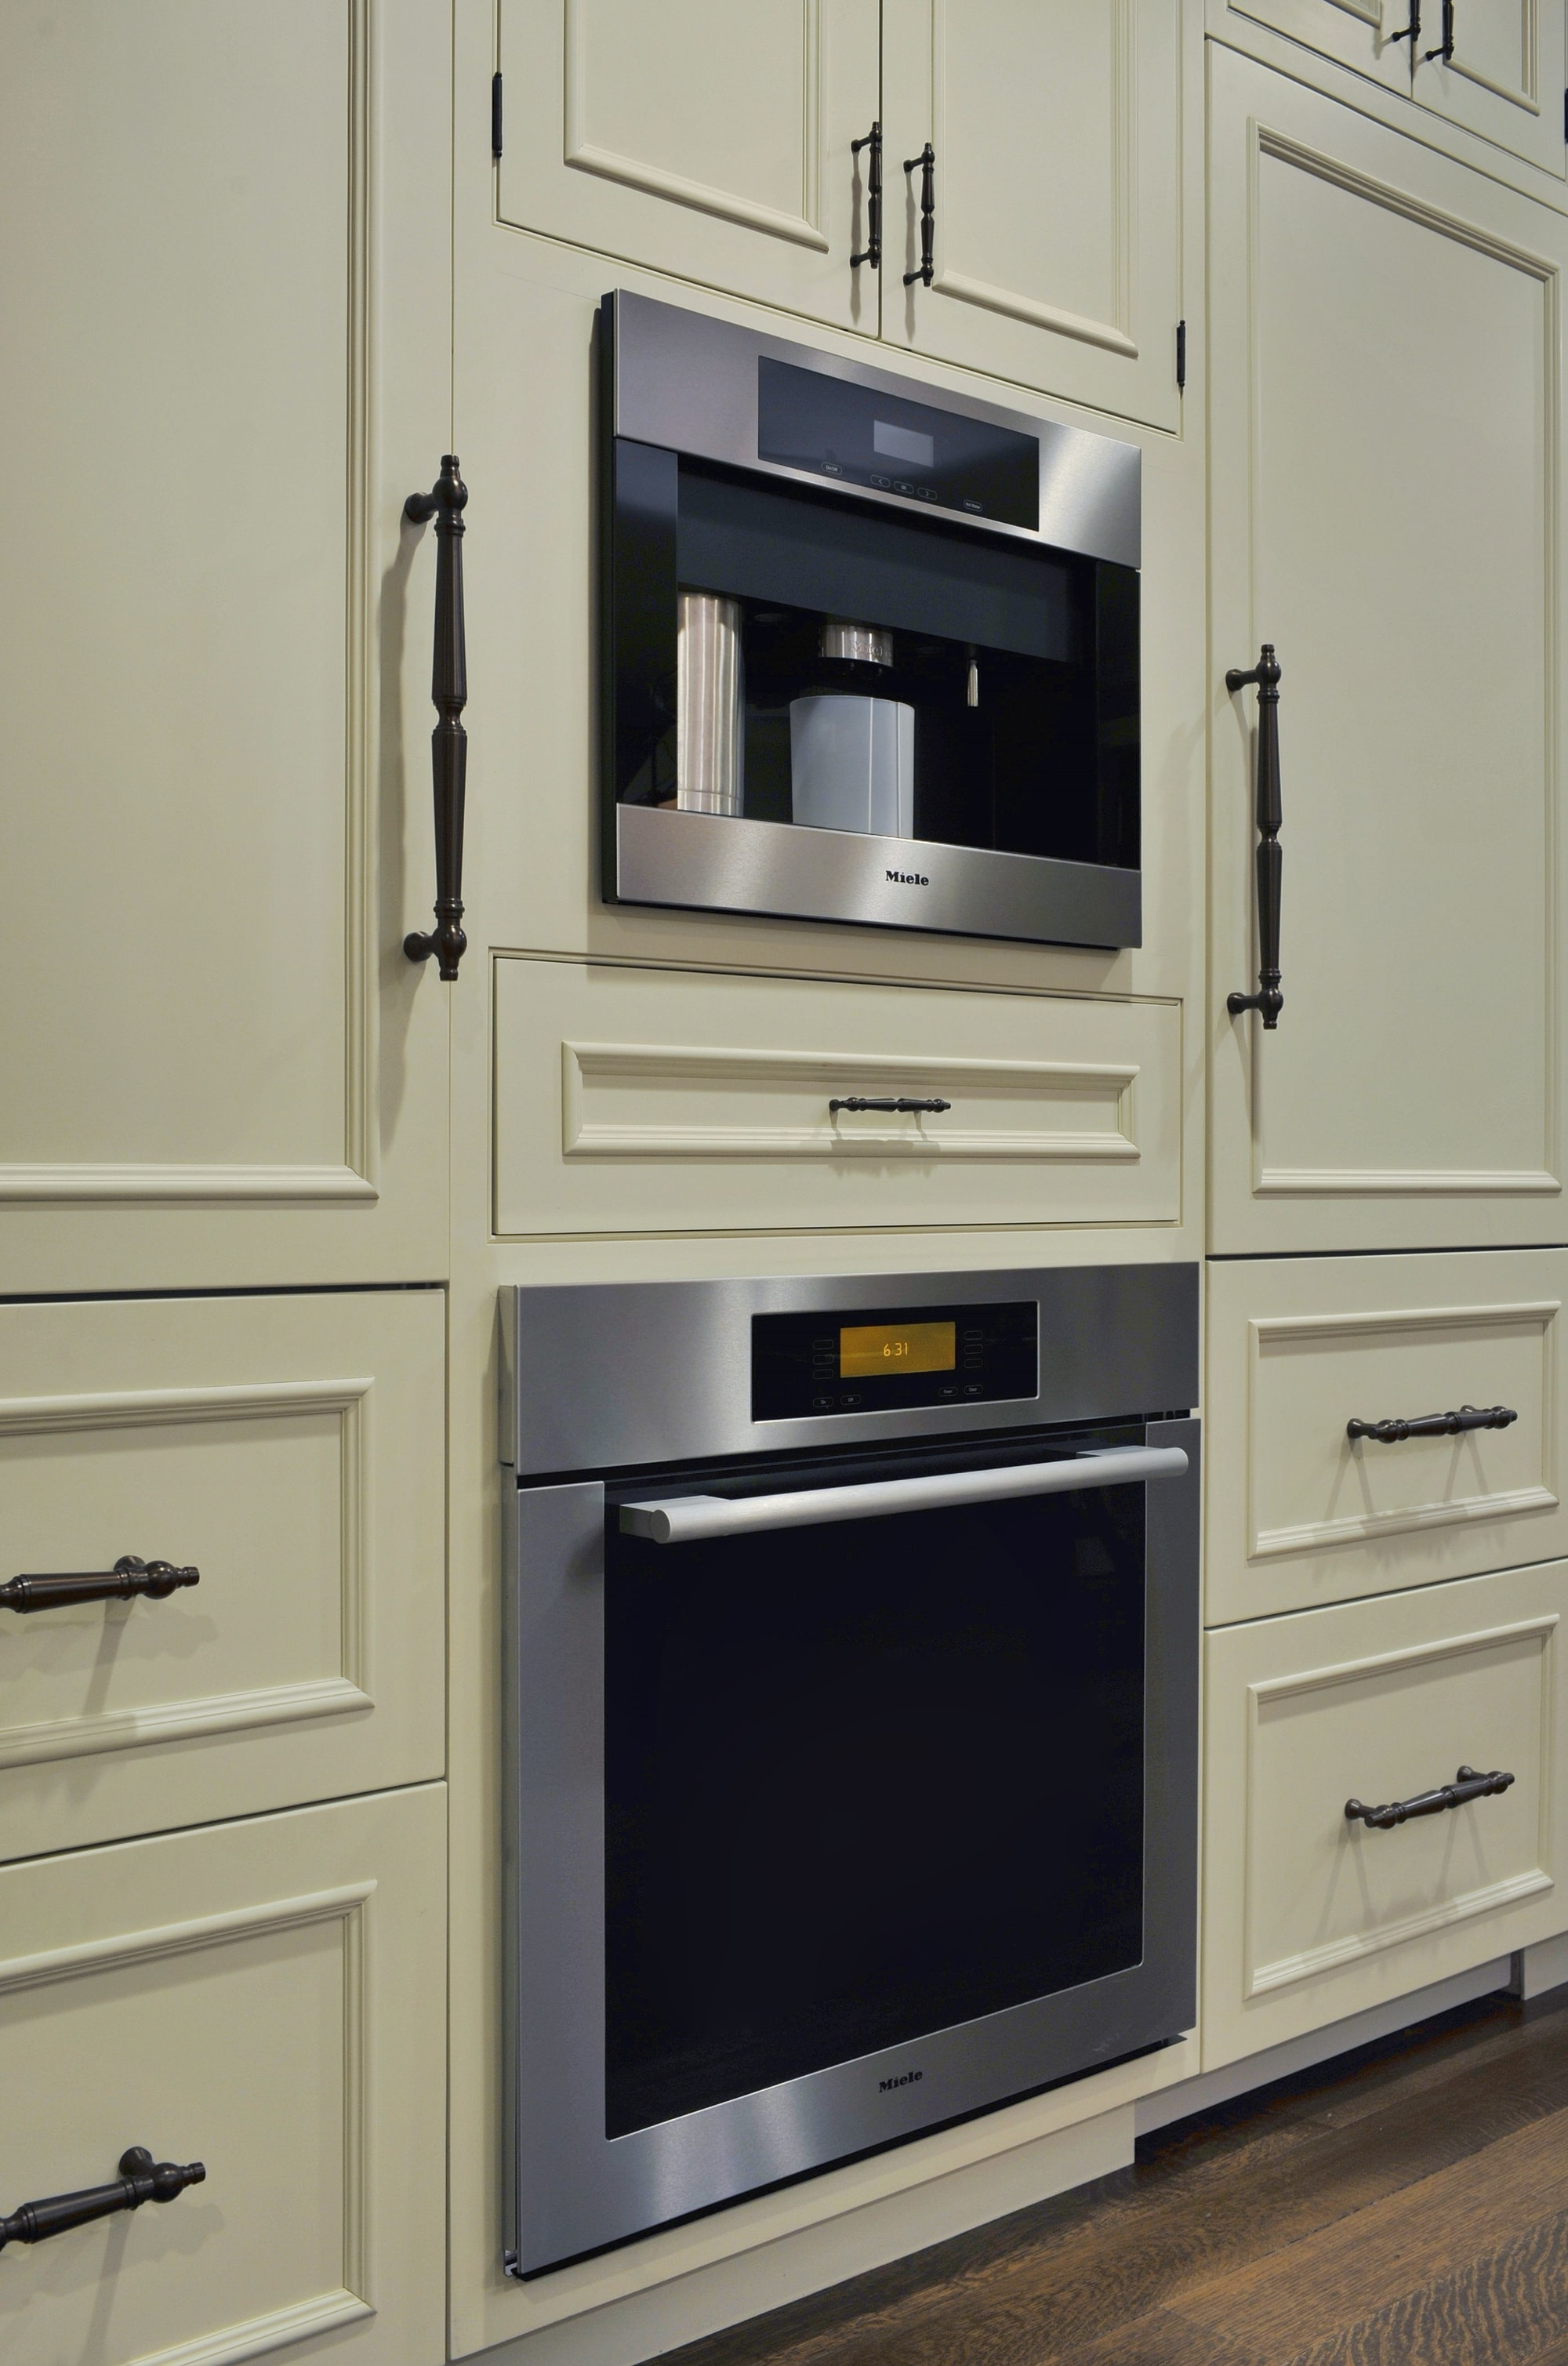 Traditional style kitchen with speed cook oven